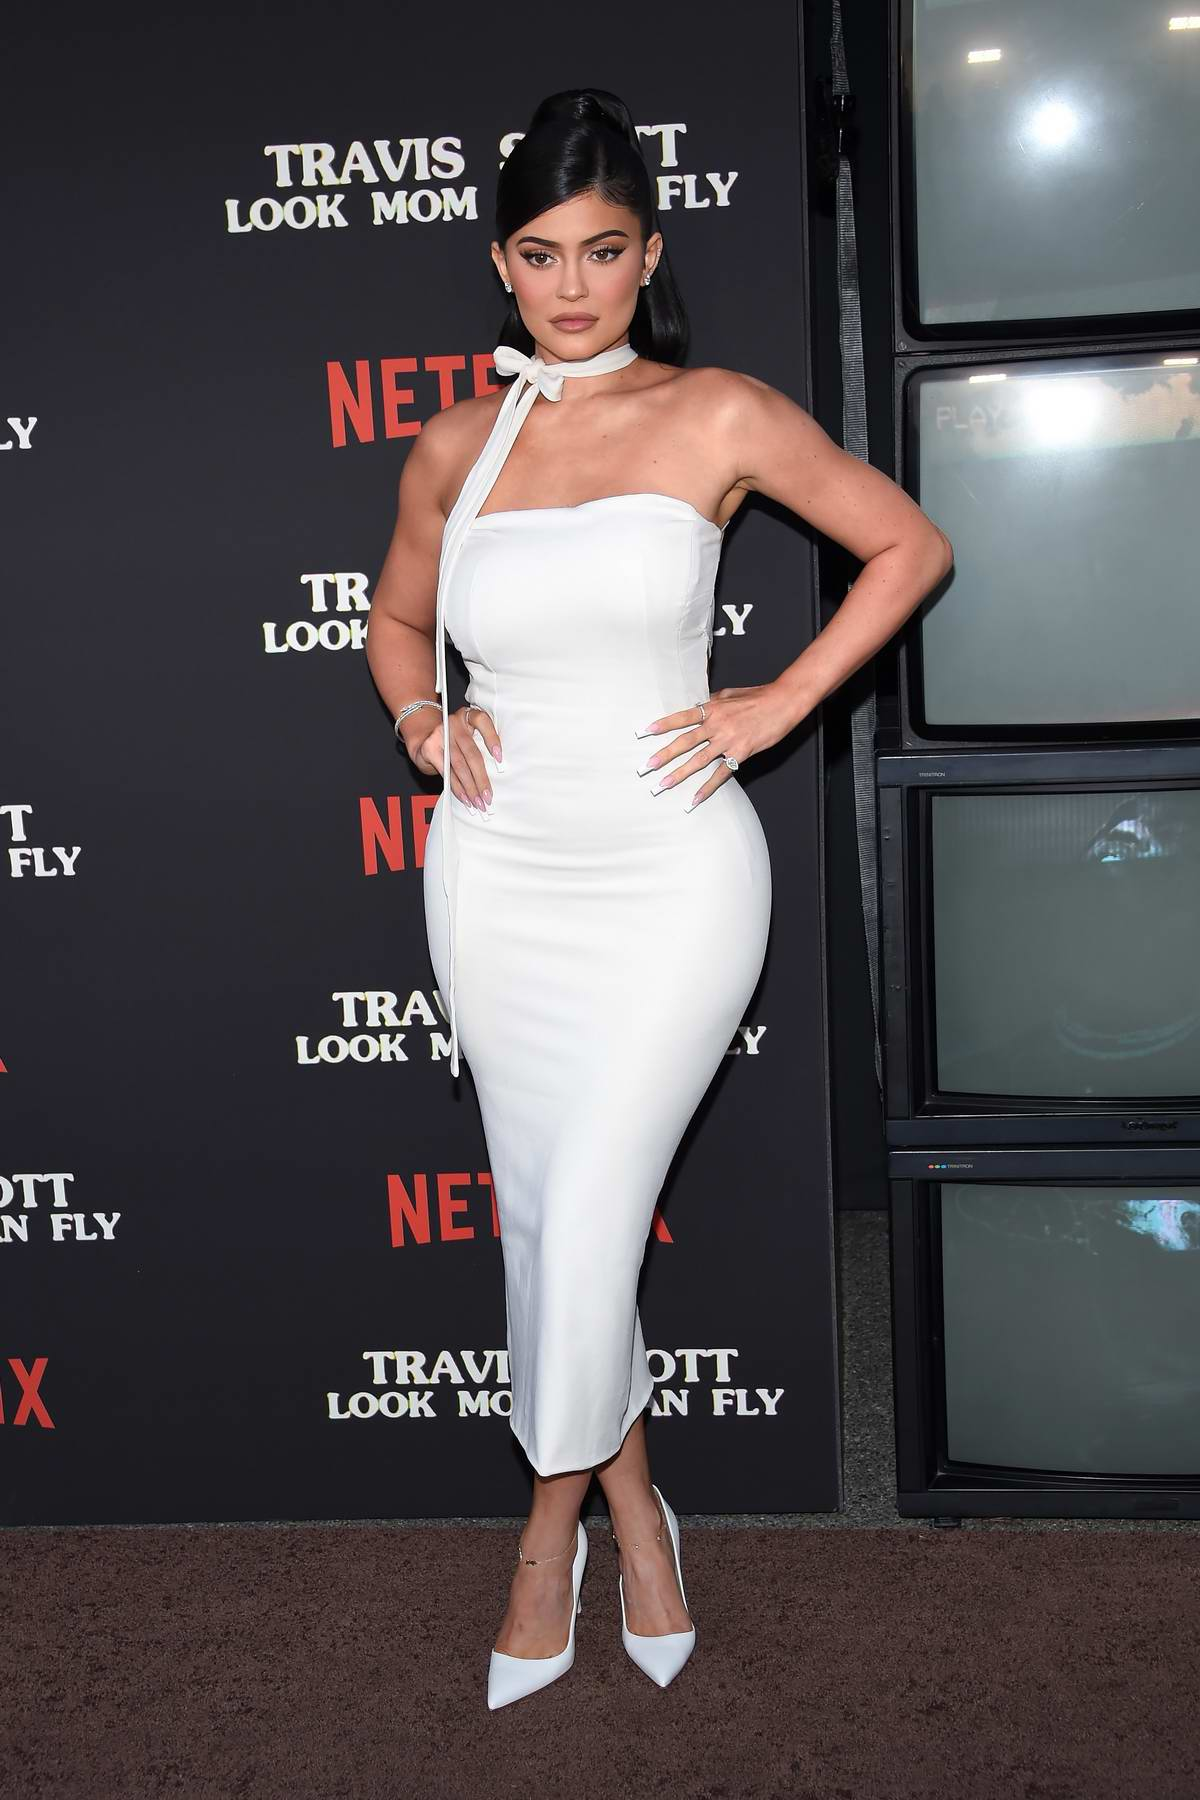 Kylie Jenner attends the premiere of Netflix's 'Travis Scott: Look Mom I Can Fly' in Santa Monica, California